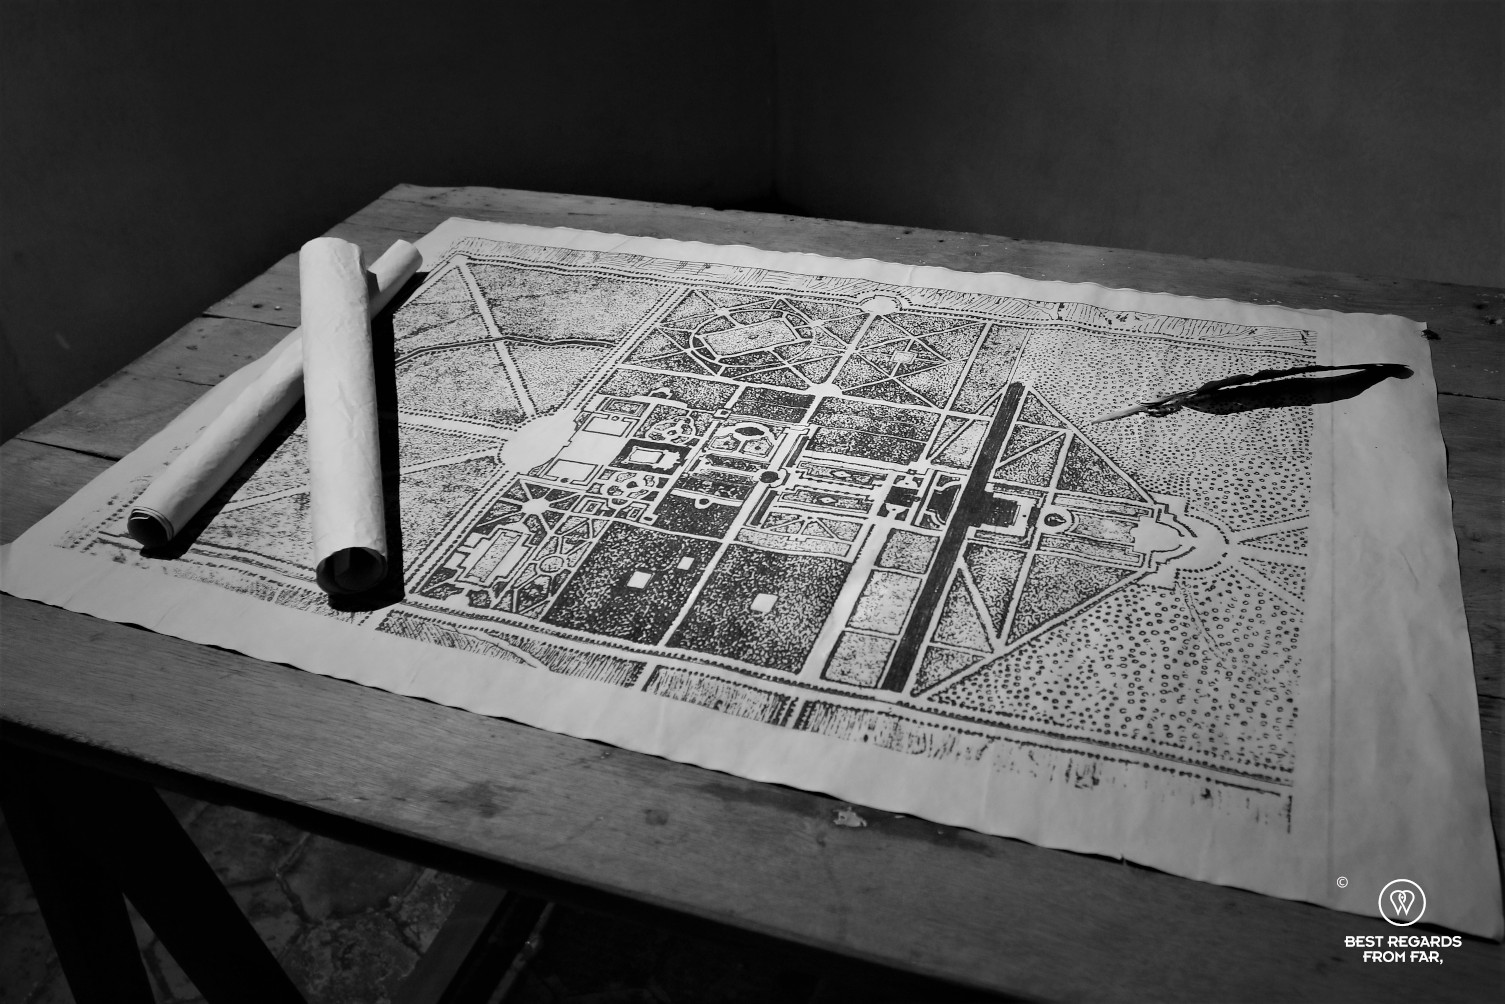 Old map of the grounds on the castle of Vaux le Vicomte, France